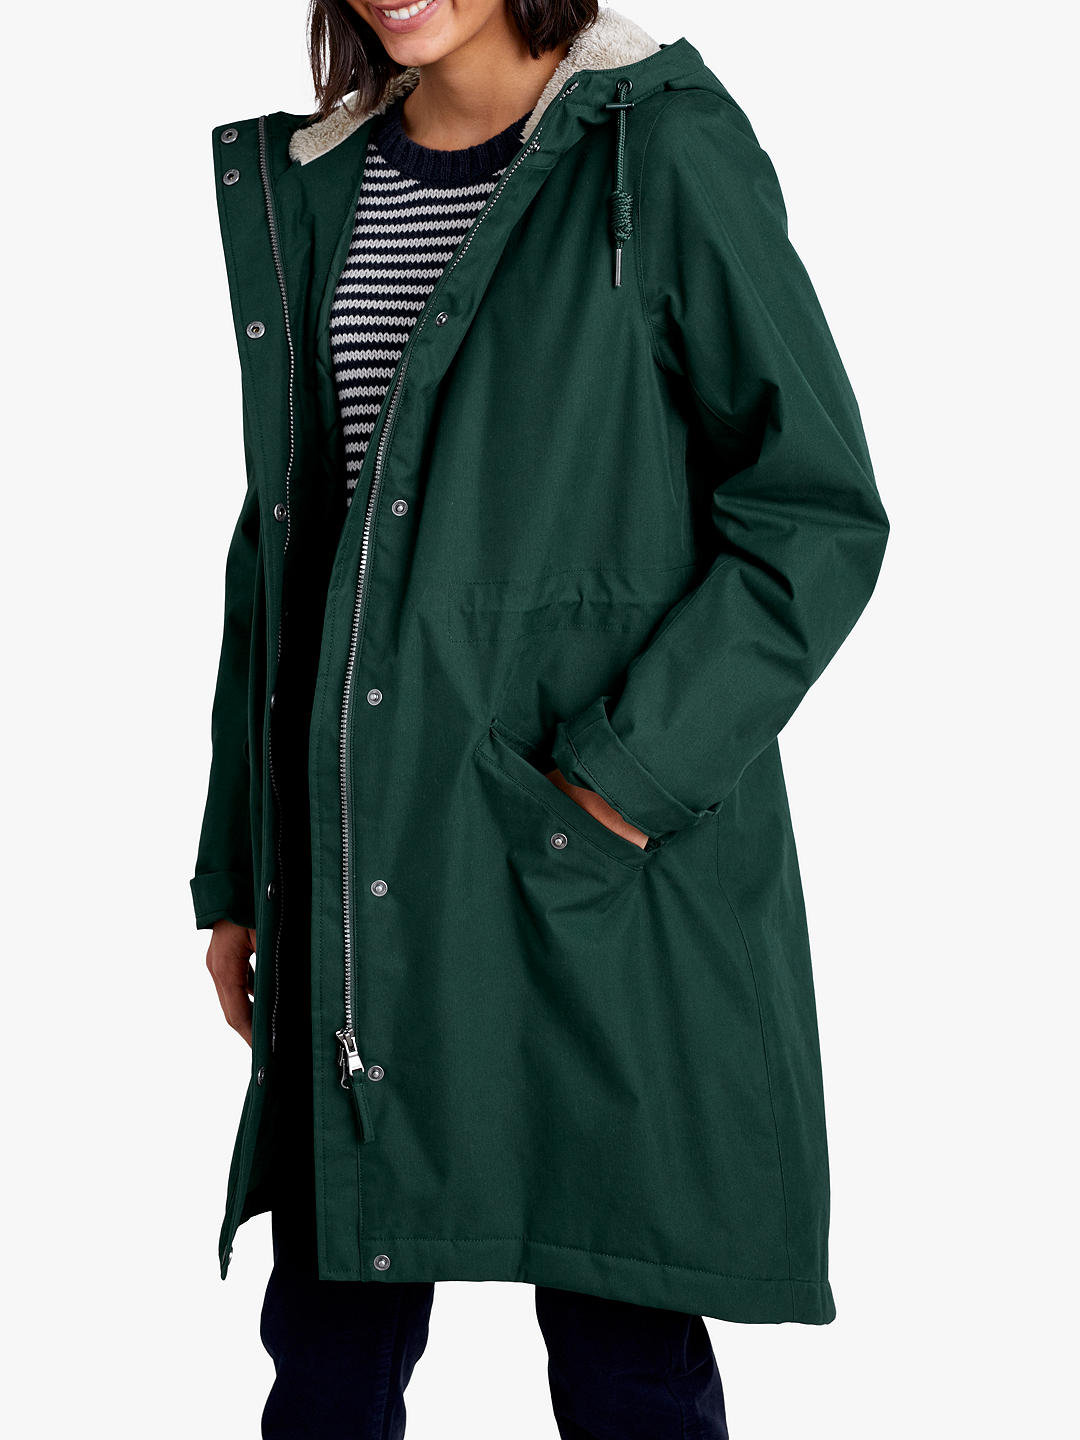 John Lewis Seasalt Plant Hunter Raincoat £150